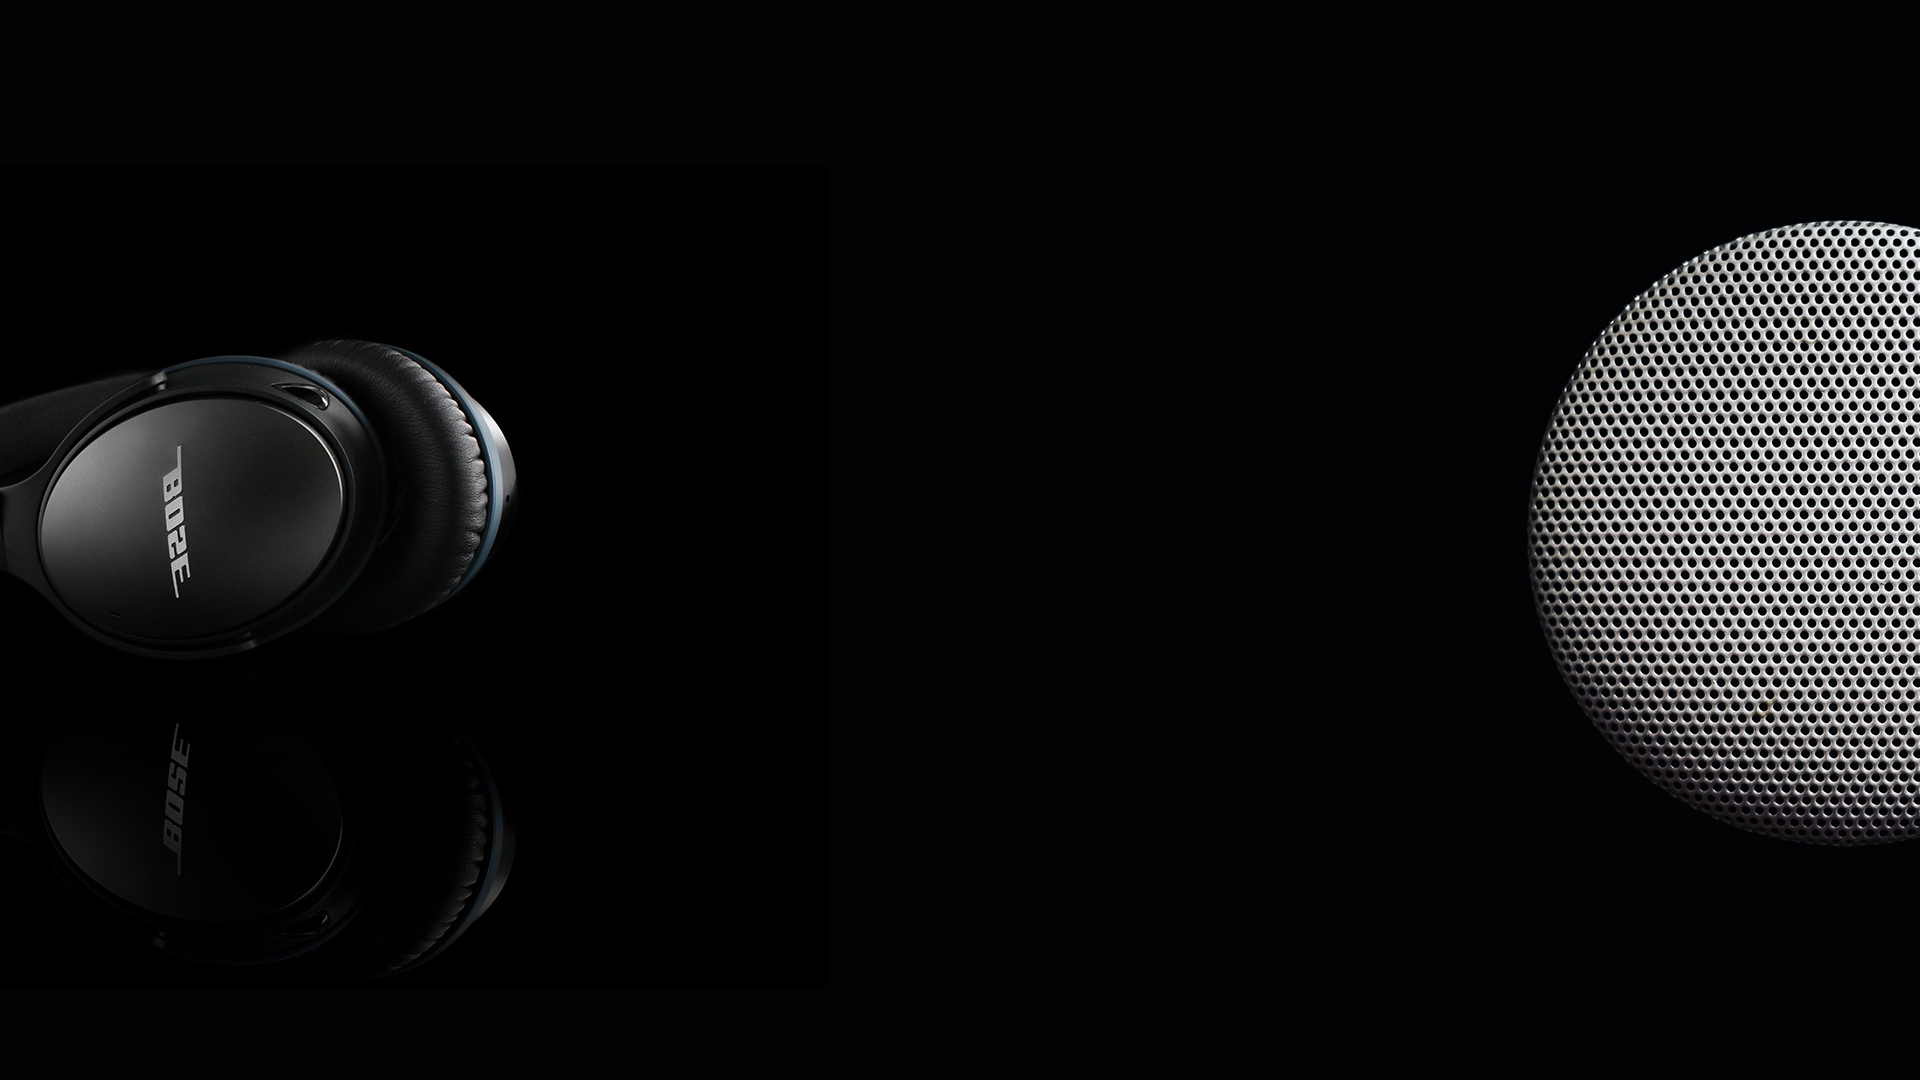 Bose headphones and speaker on black background.